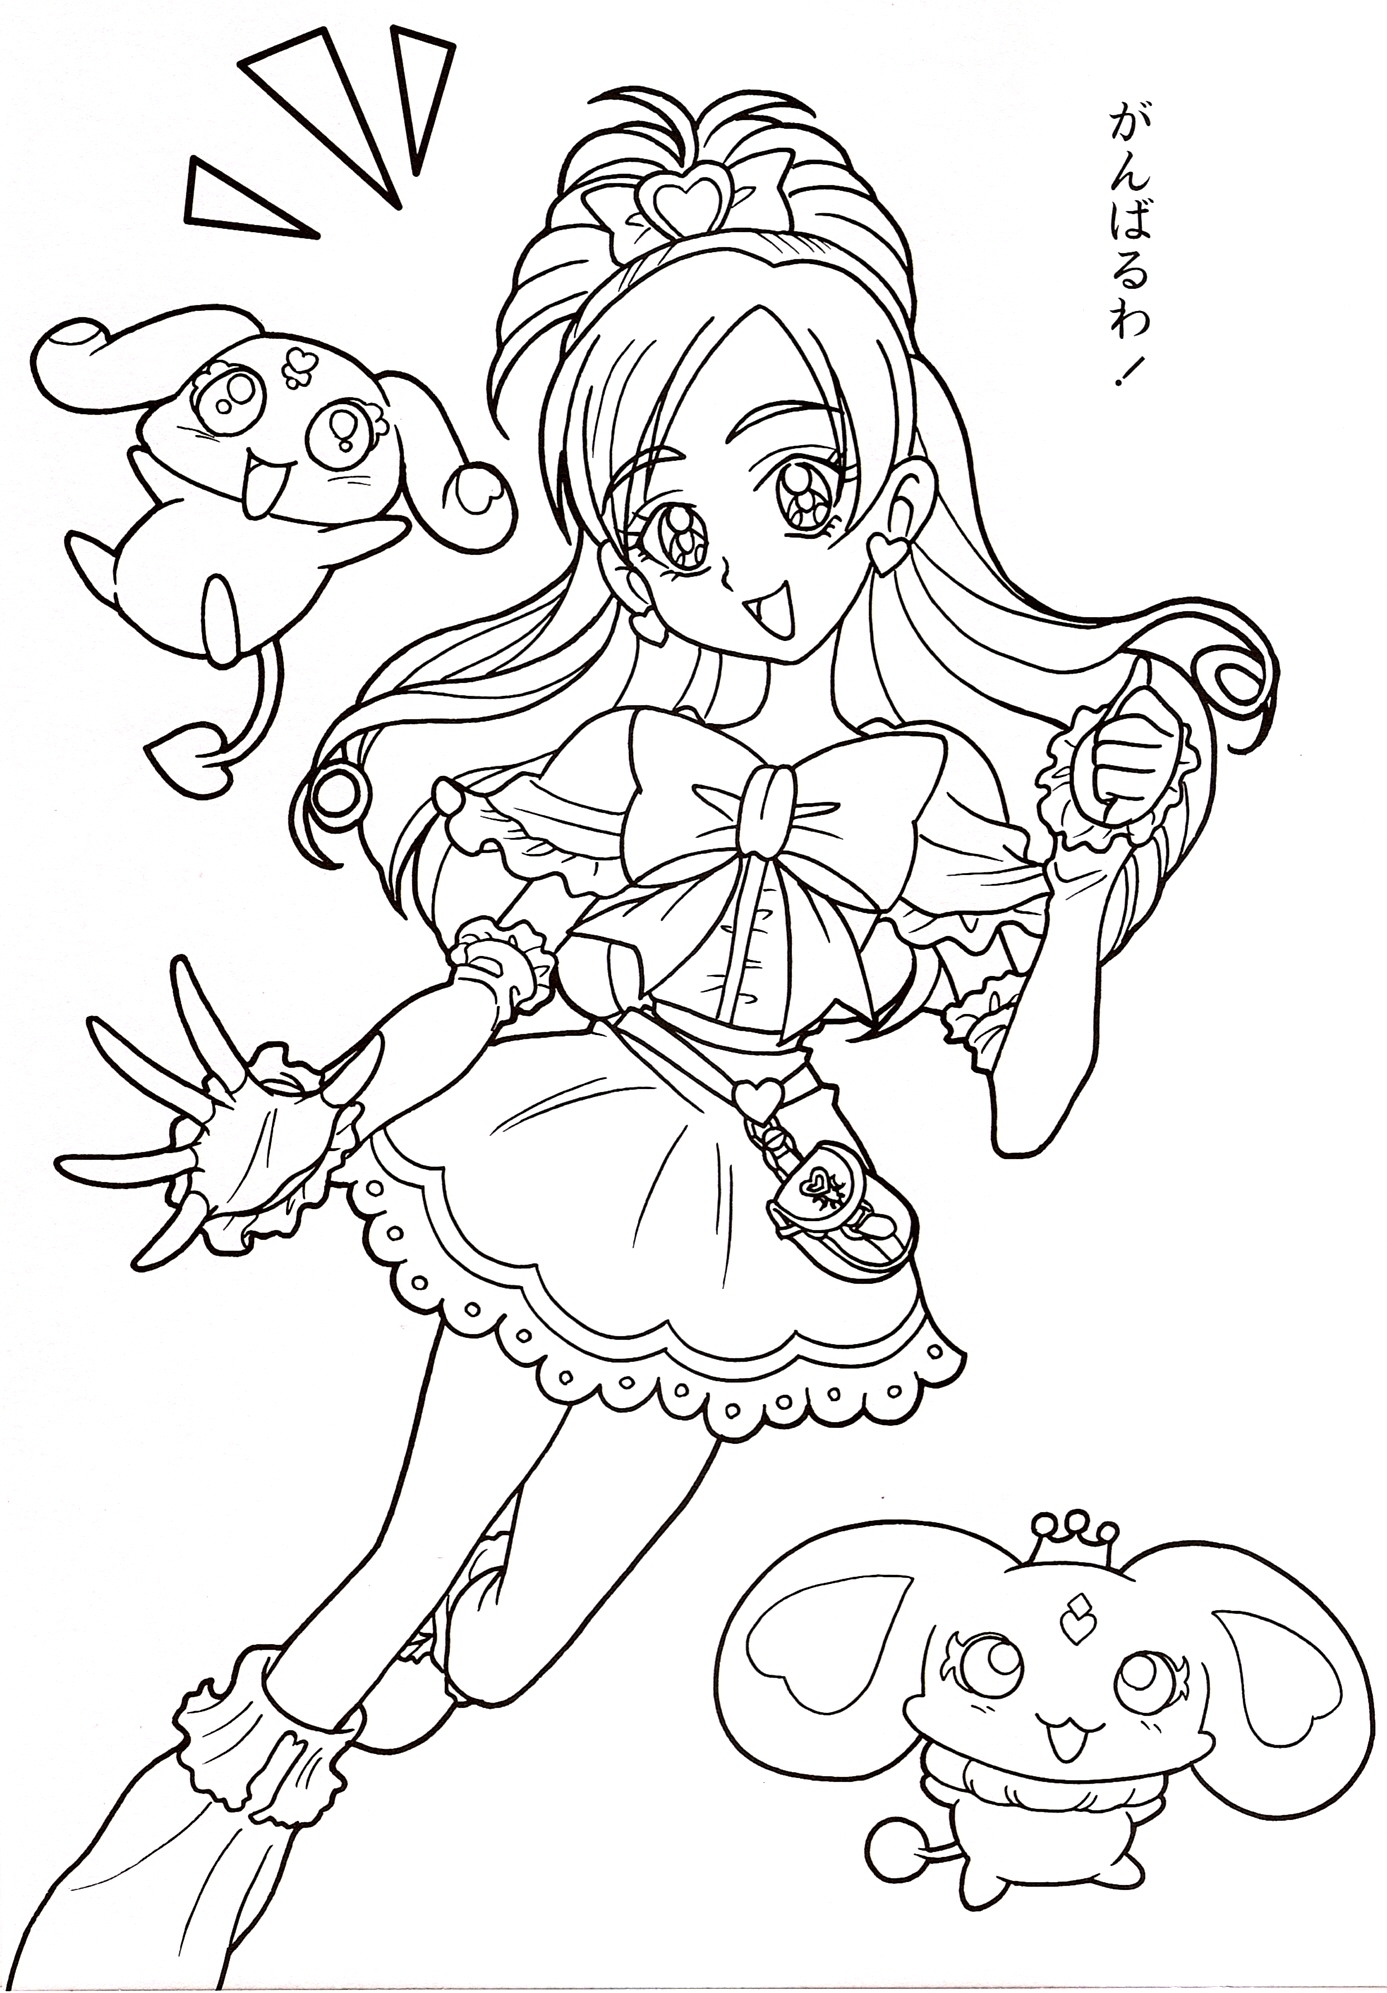 pertty coloring pages - photo#19